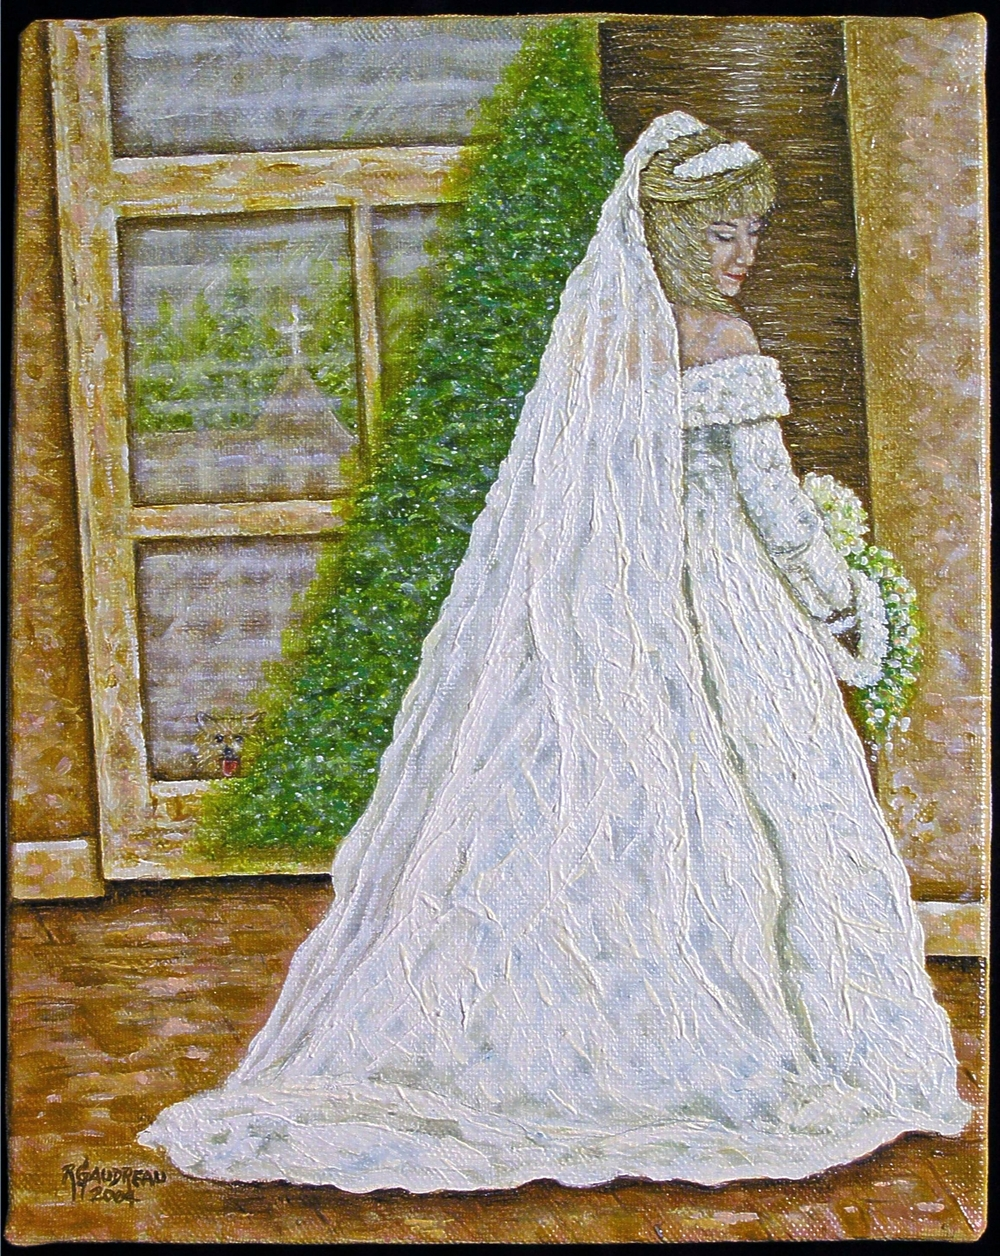 Arlene's Wedding Day    2004 oil on linen 20 x 16 inches